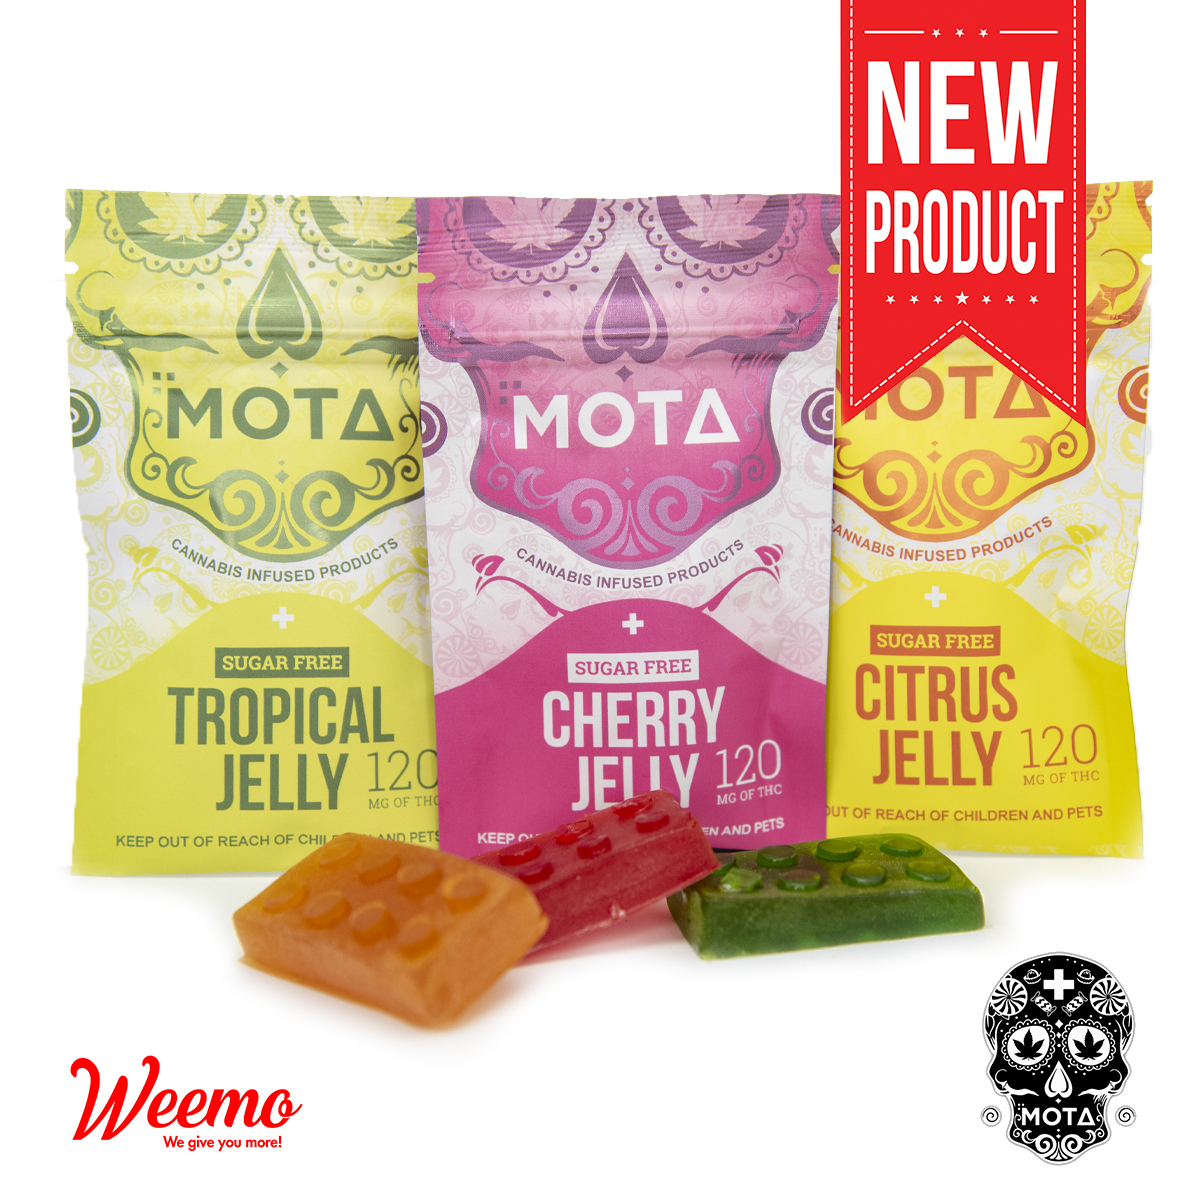 MOTA Sugar Free Jelly by Weemo - Image © 2019 Weemo. All Rights Reserved.